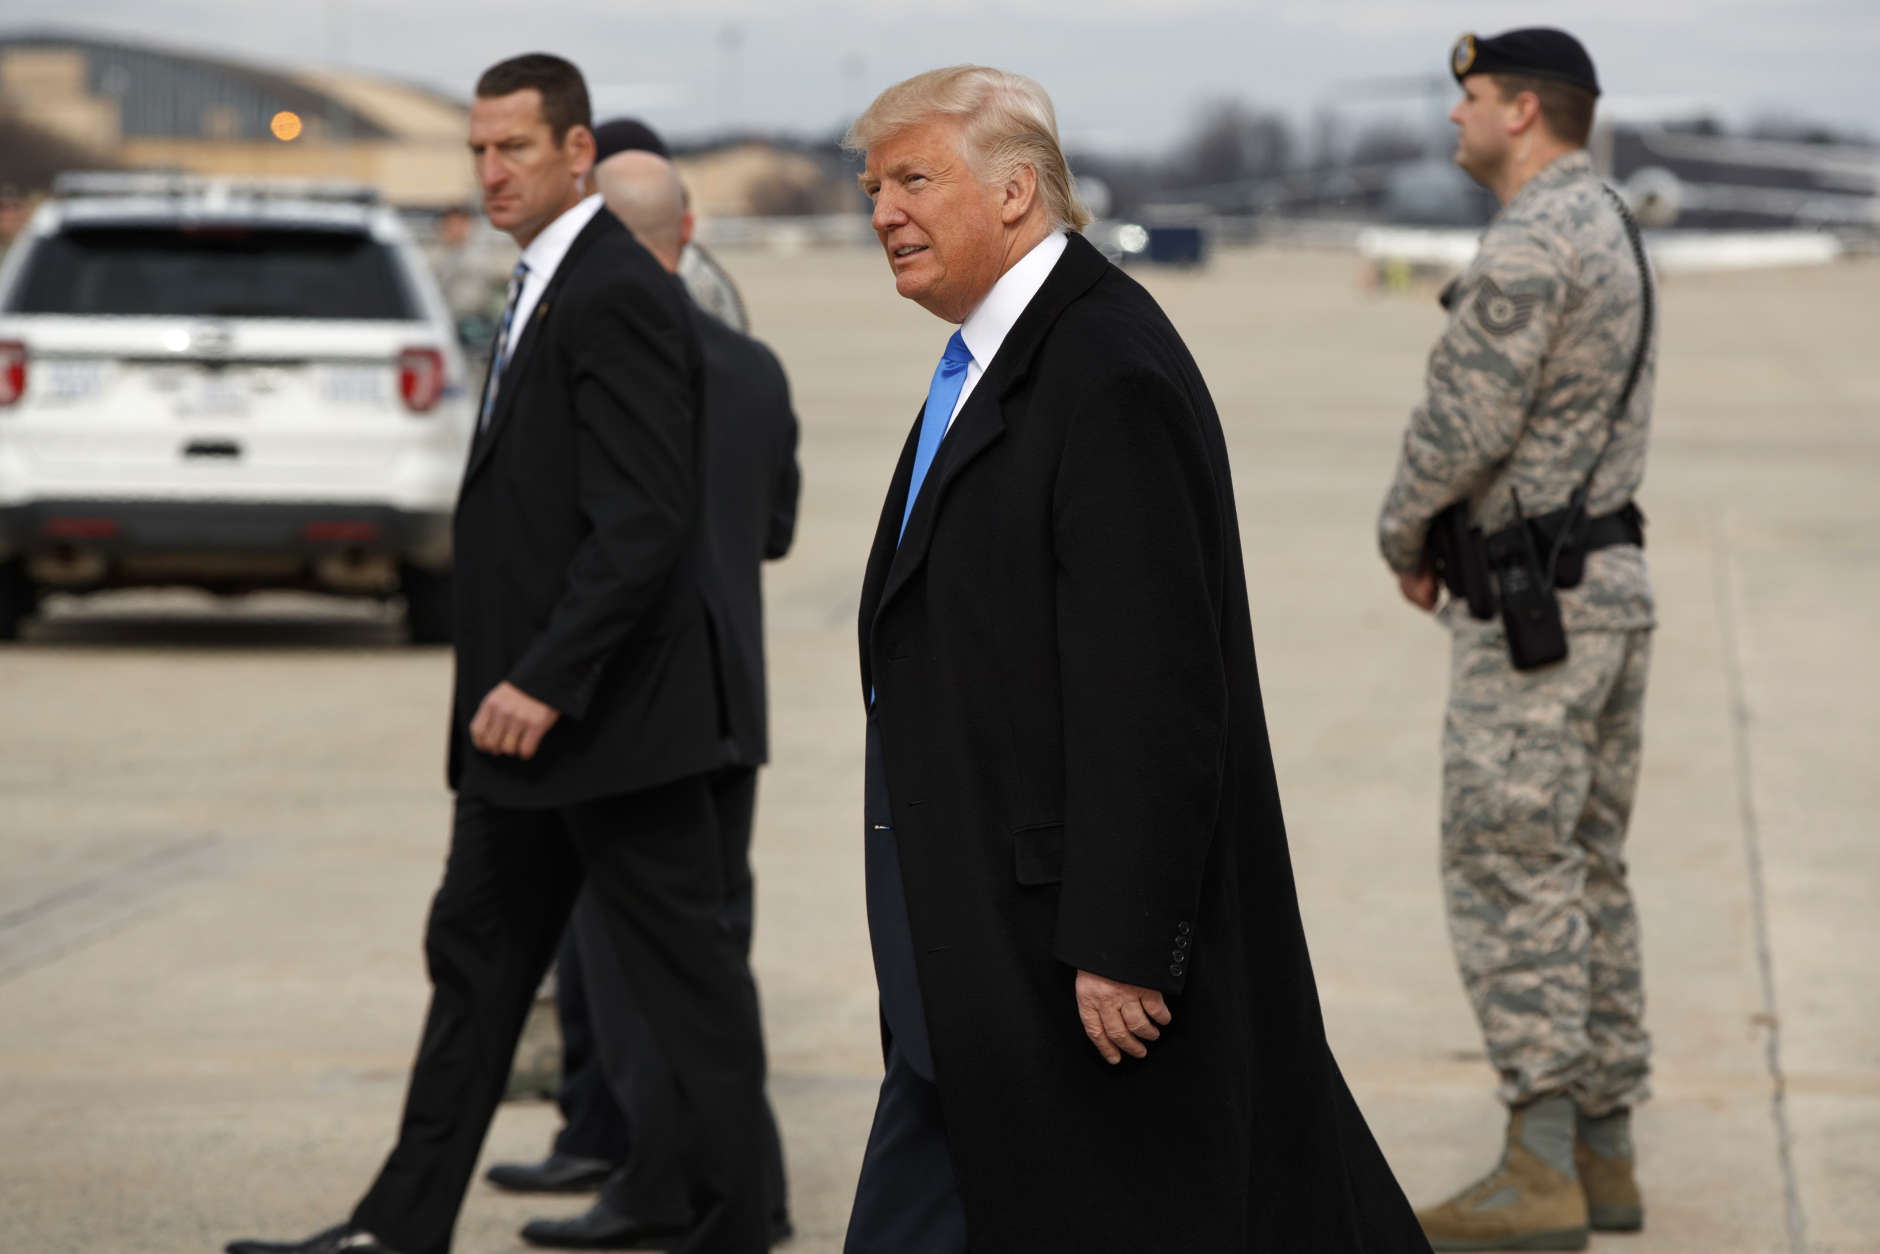 President-elect Donald Trump arrives at Andrews Air Force Base, Md.,Thursday, Jan. 19, 2017, ahead of Friday's inauguration. (AP Photo/Evan Vucci)